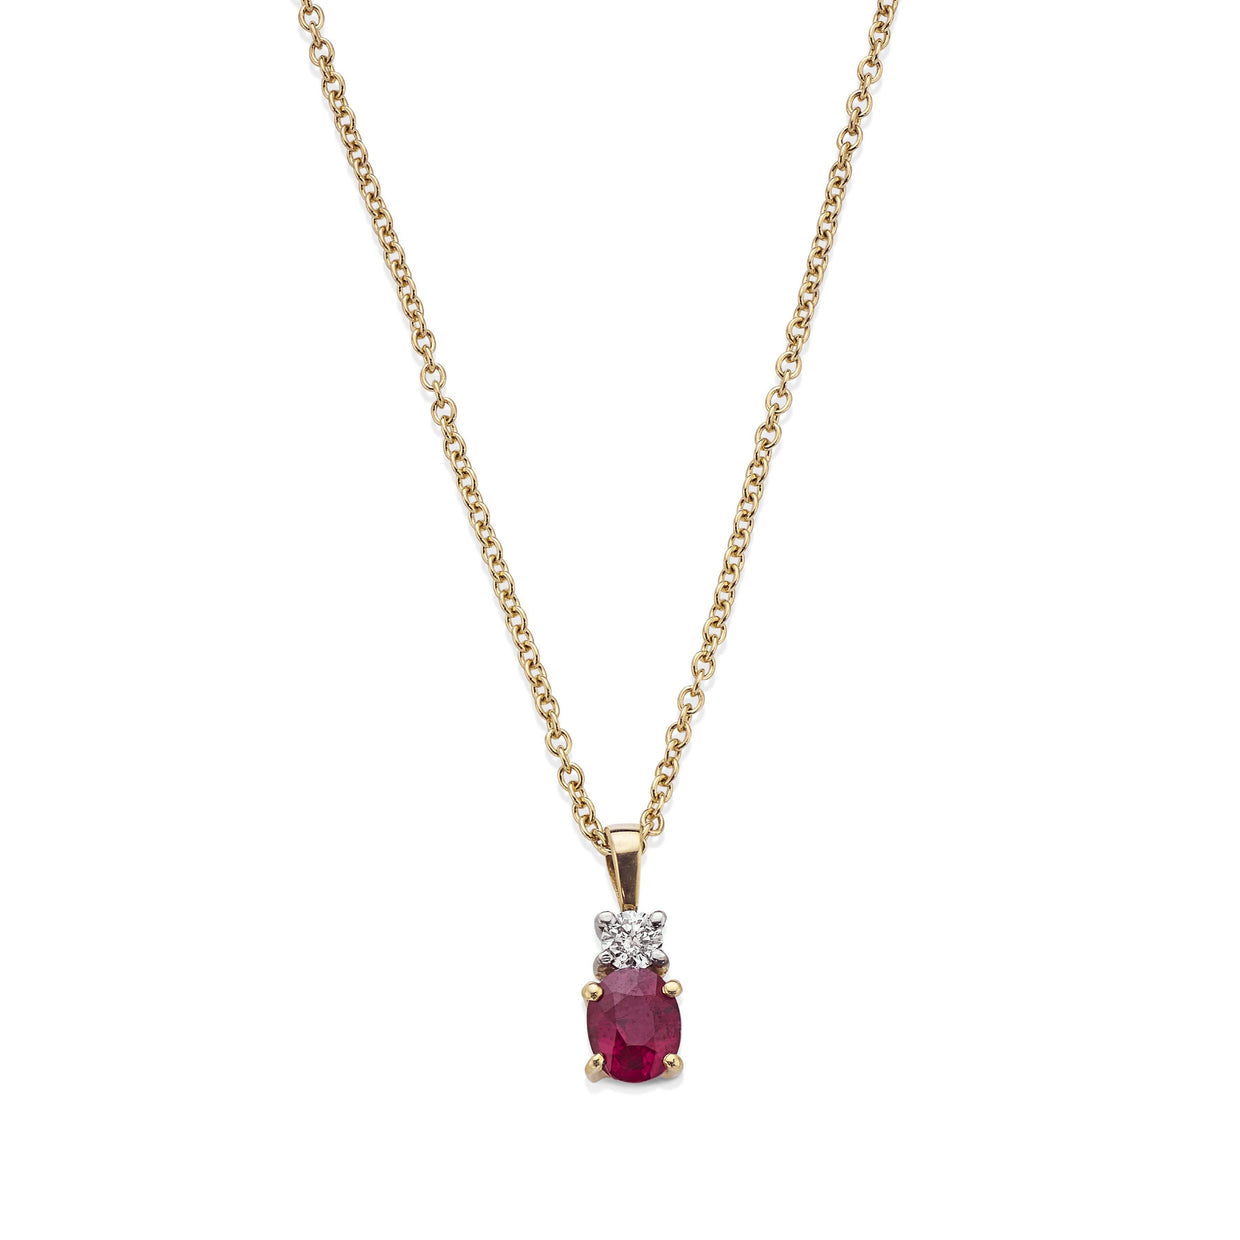 18ct Yellow Gold Ruby & Diamond Pendant with Chain - Hamilton & Inches